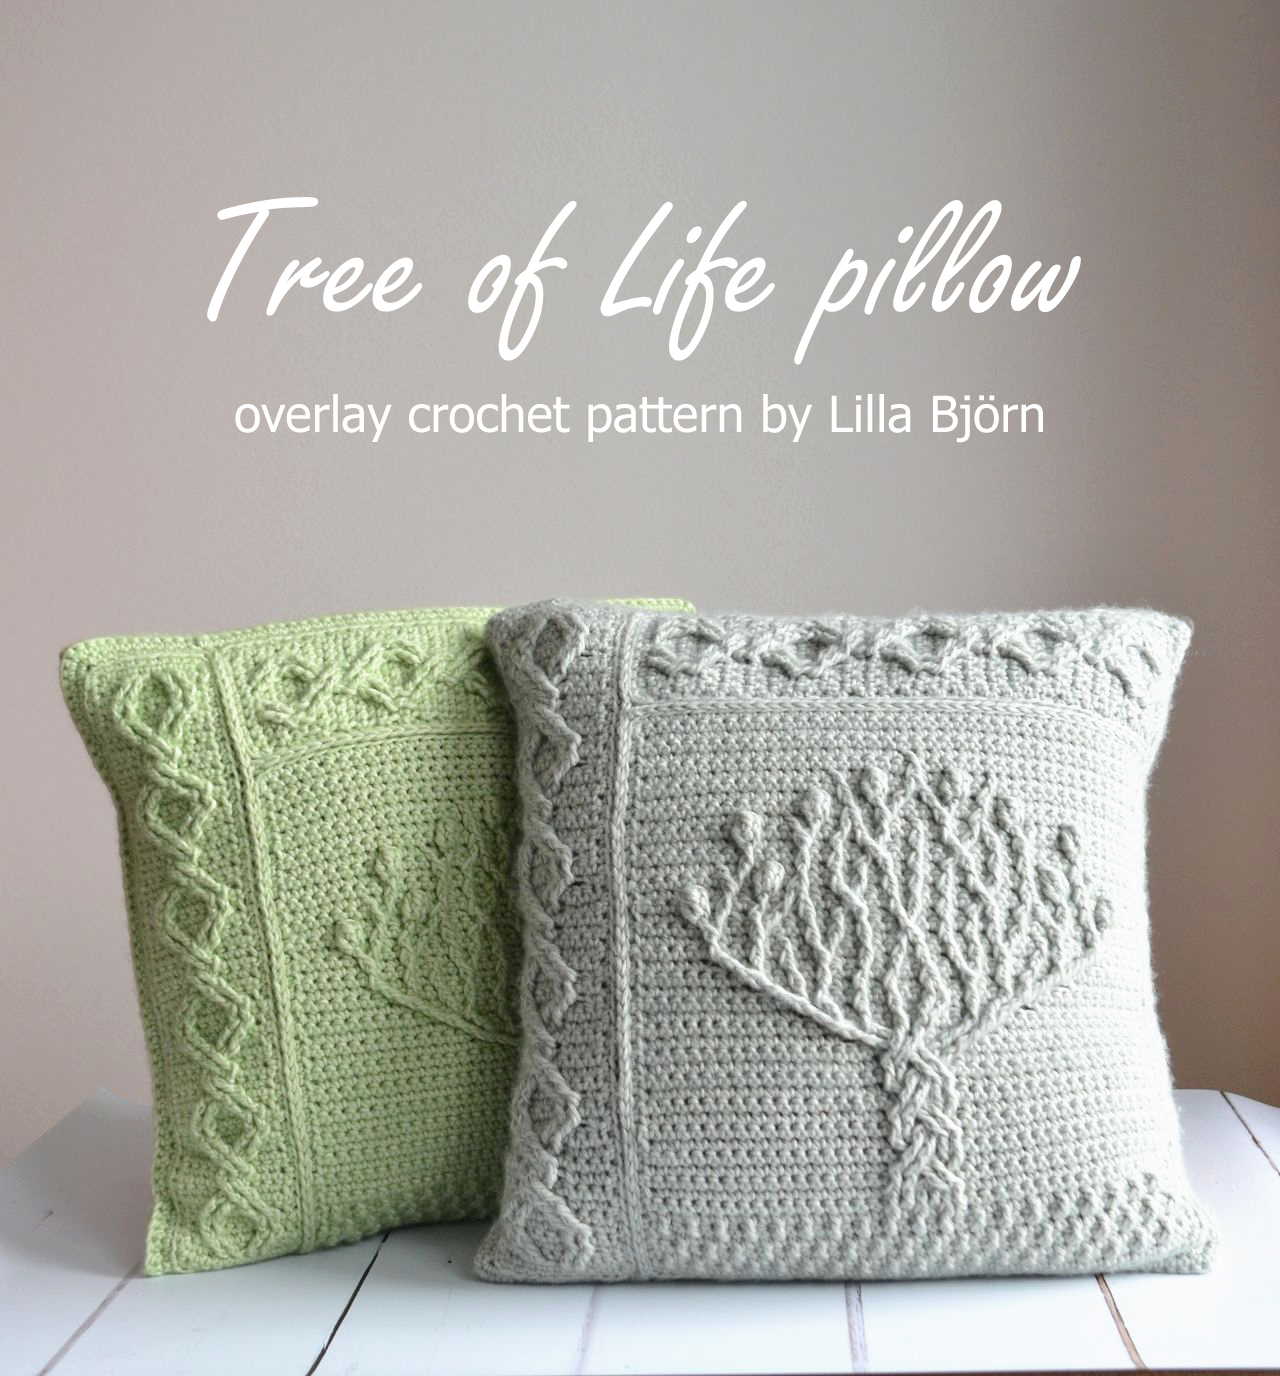 tree of life pillow new overlay